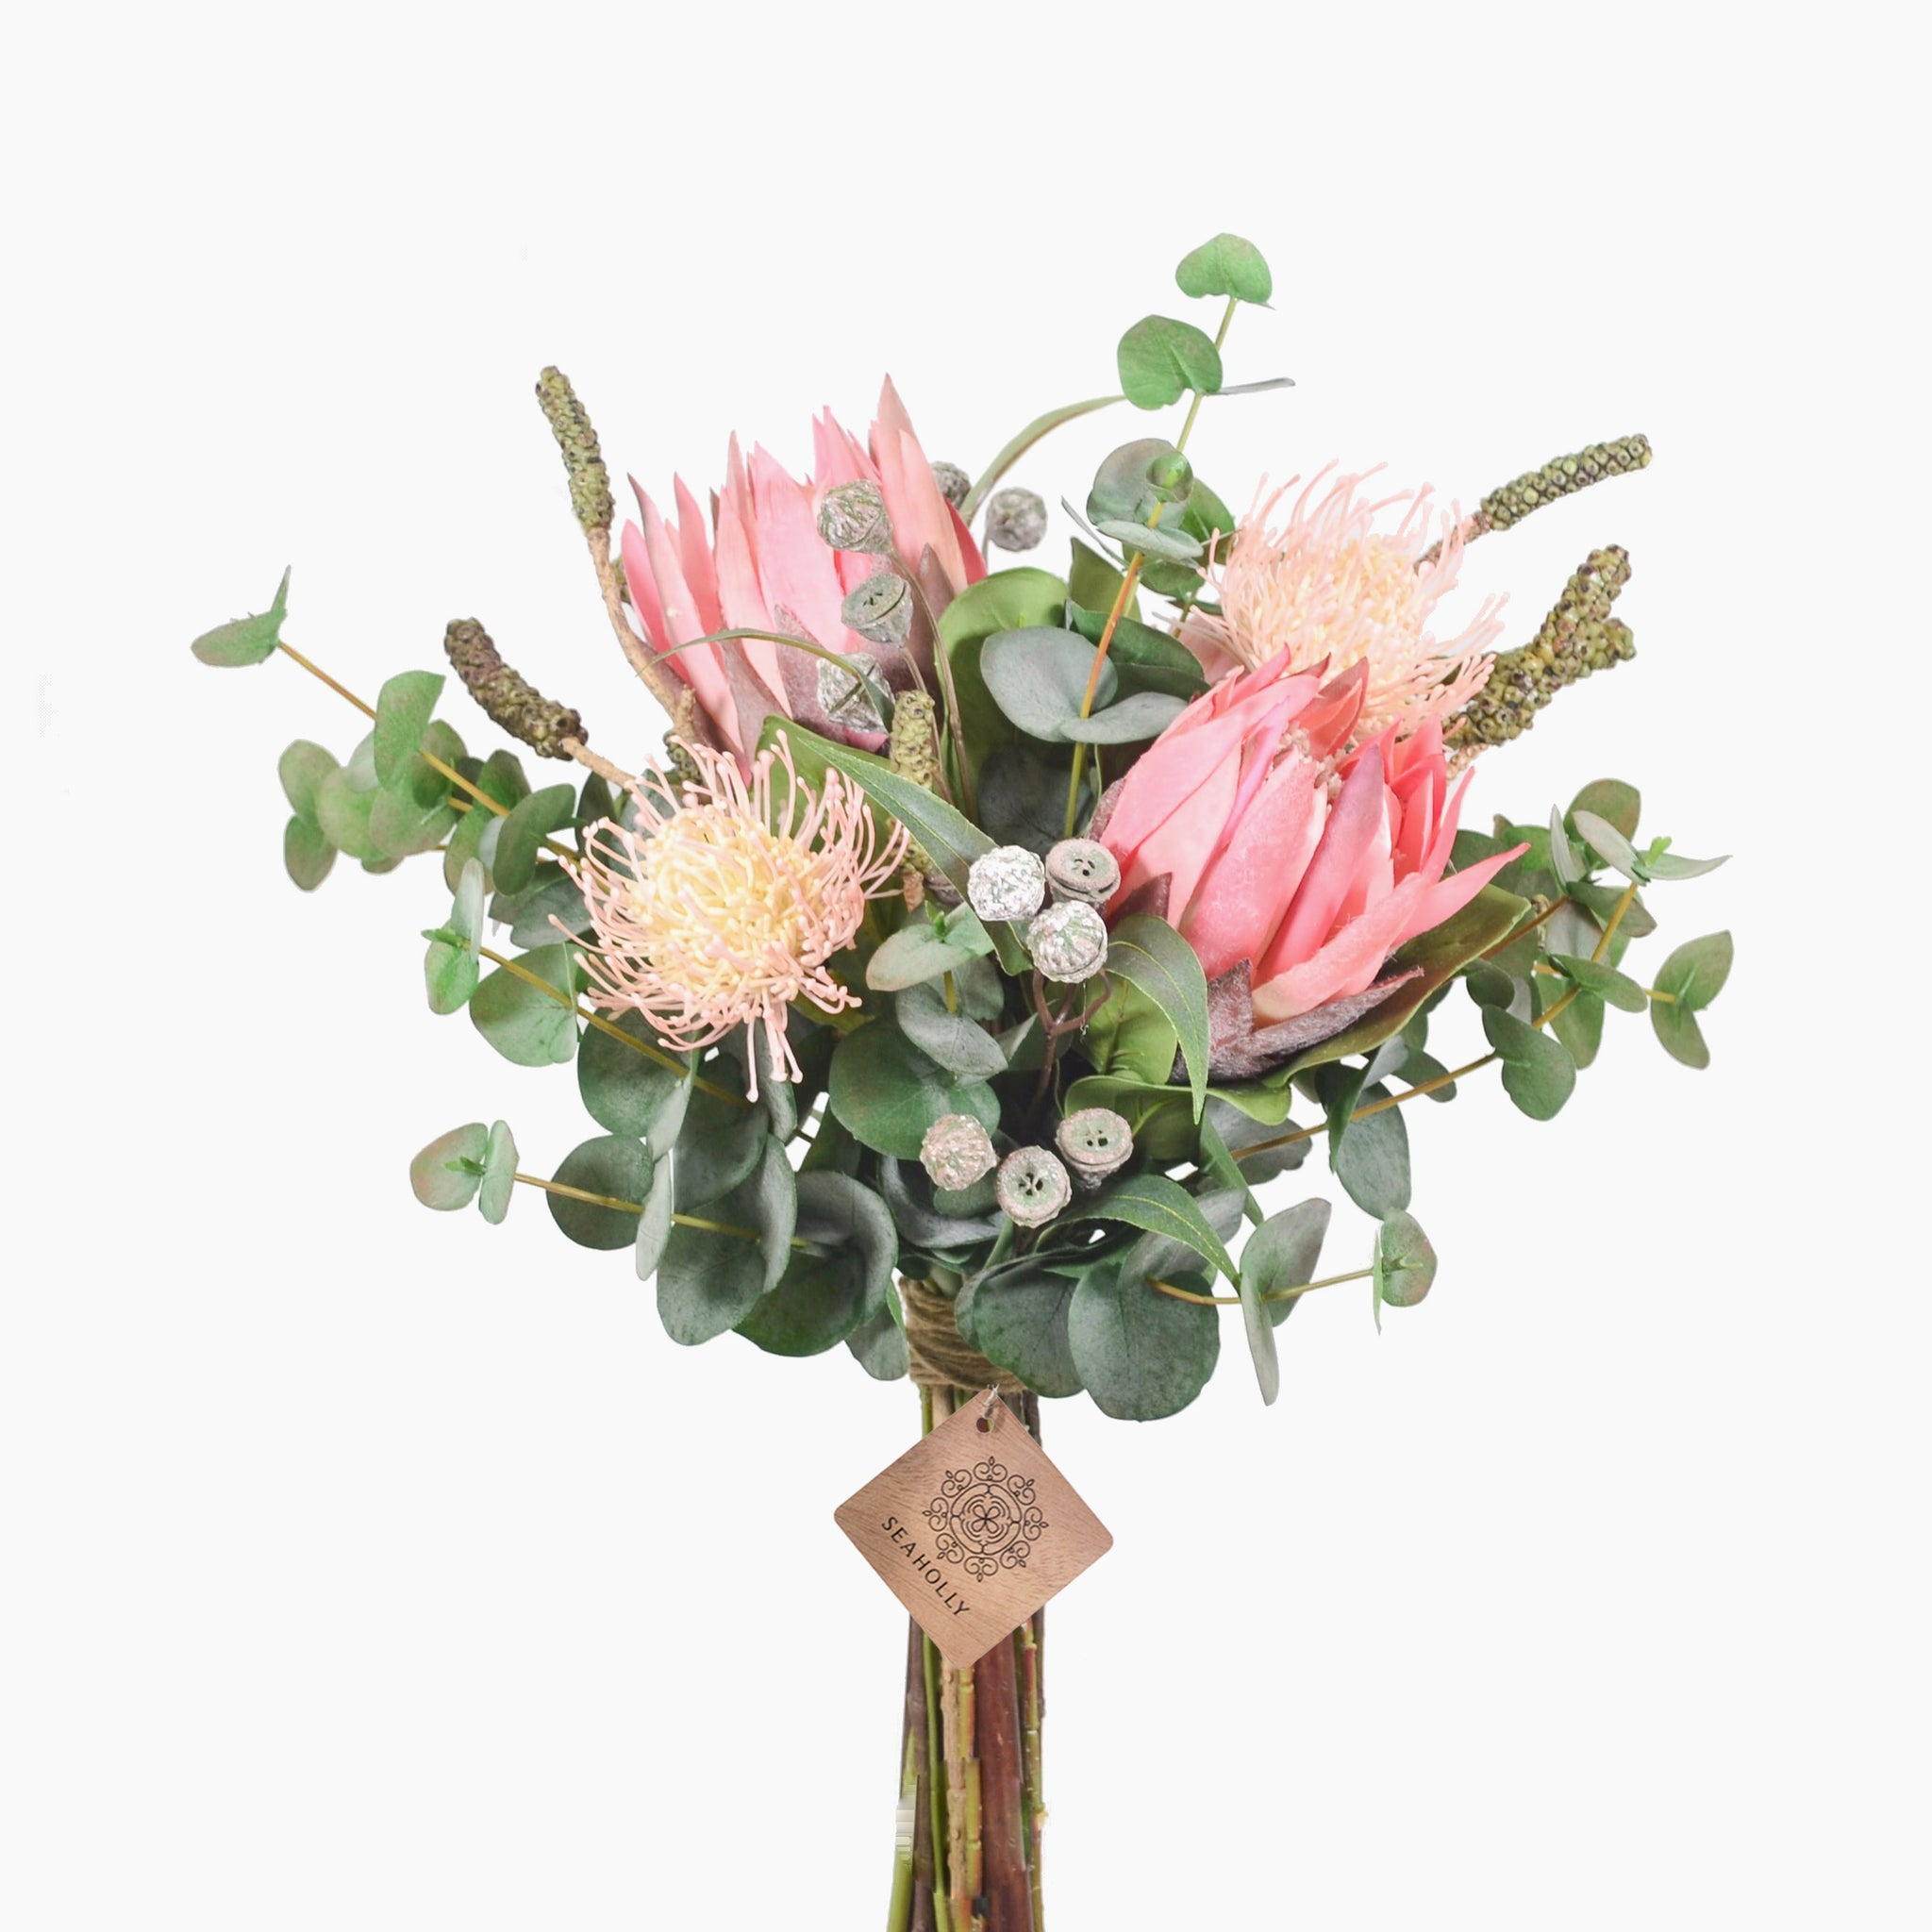 Pink protea, protea needles, bottlebrush pods and eucalyptus pods